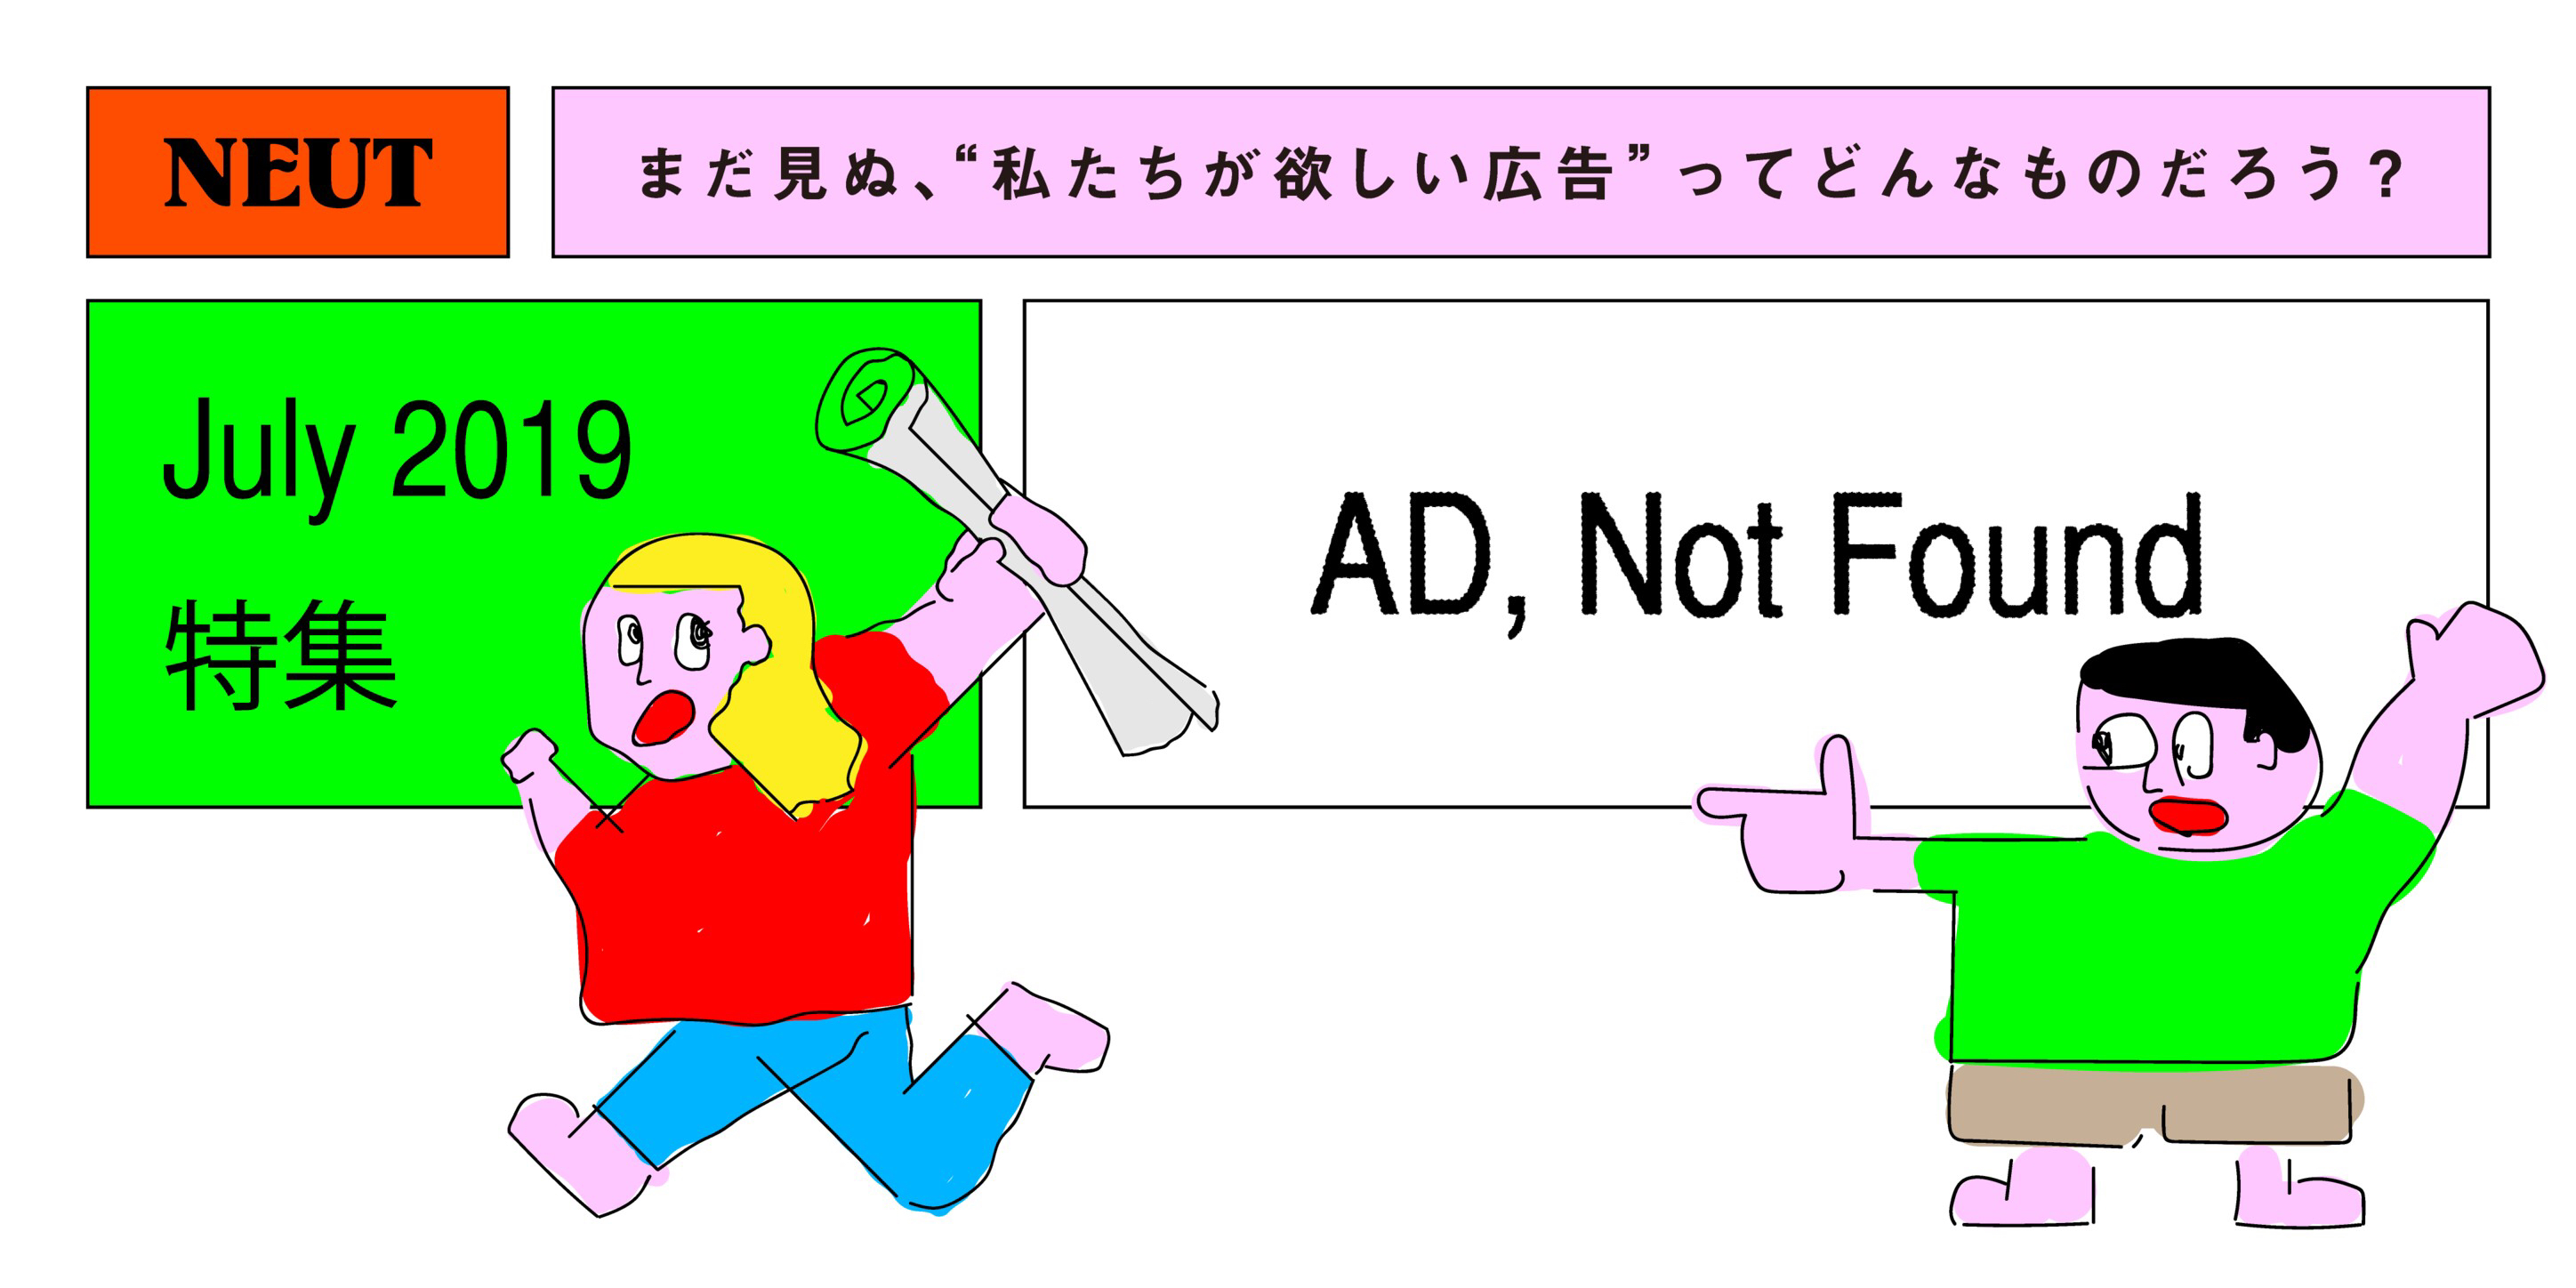 Ad, Not found